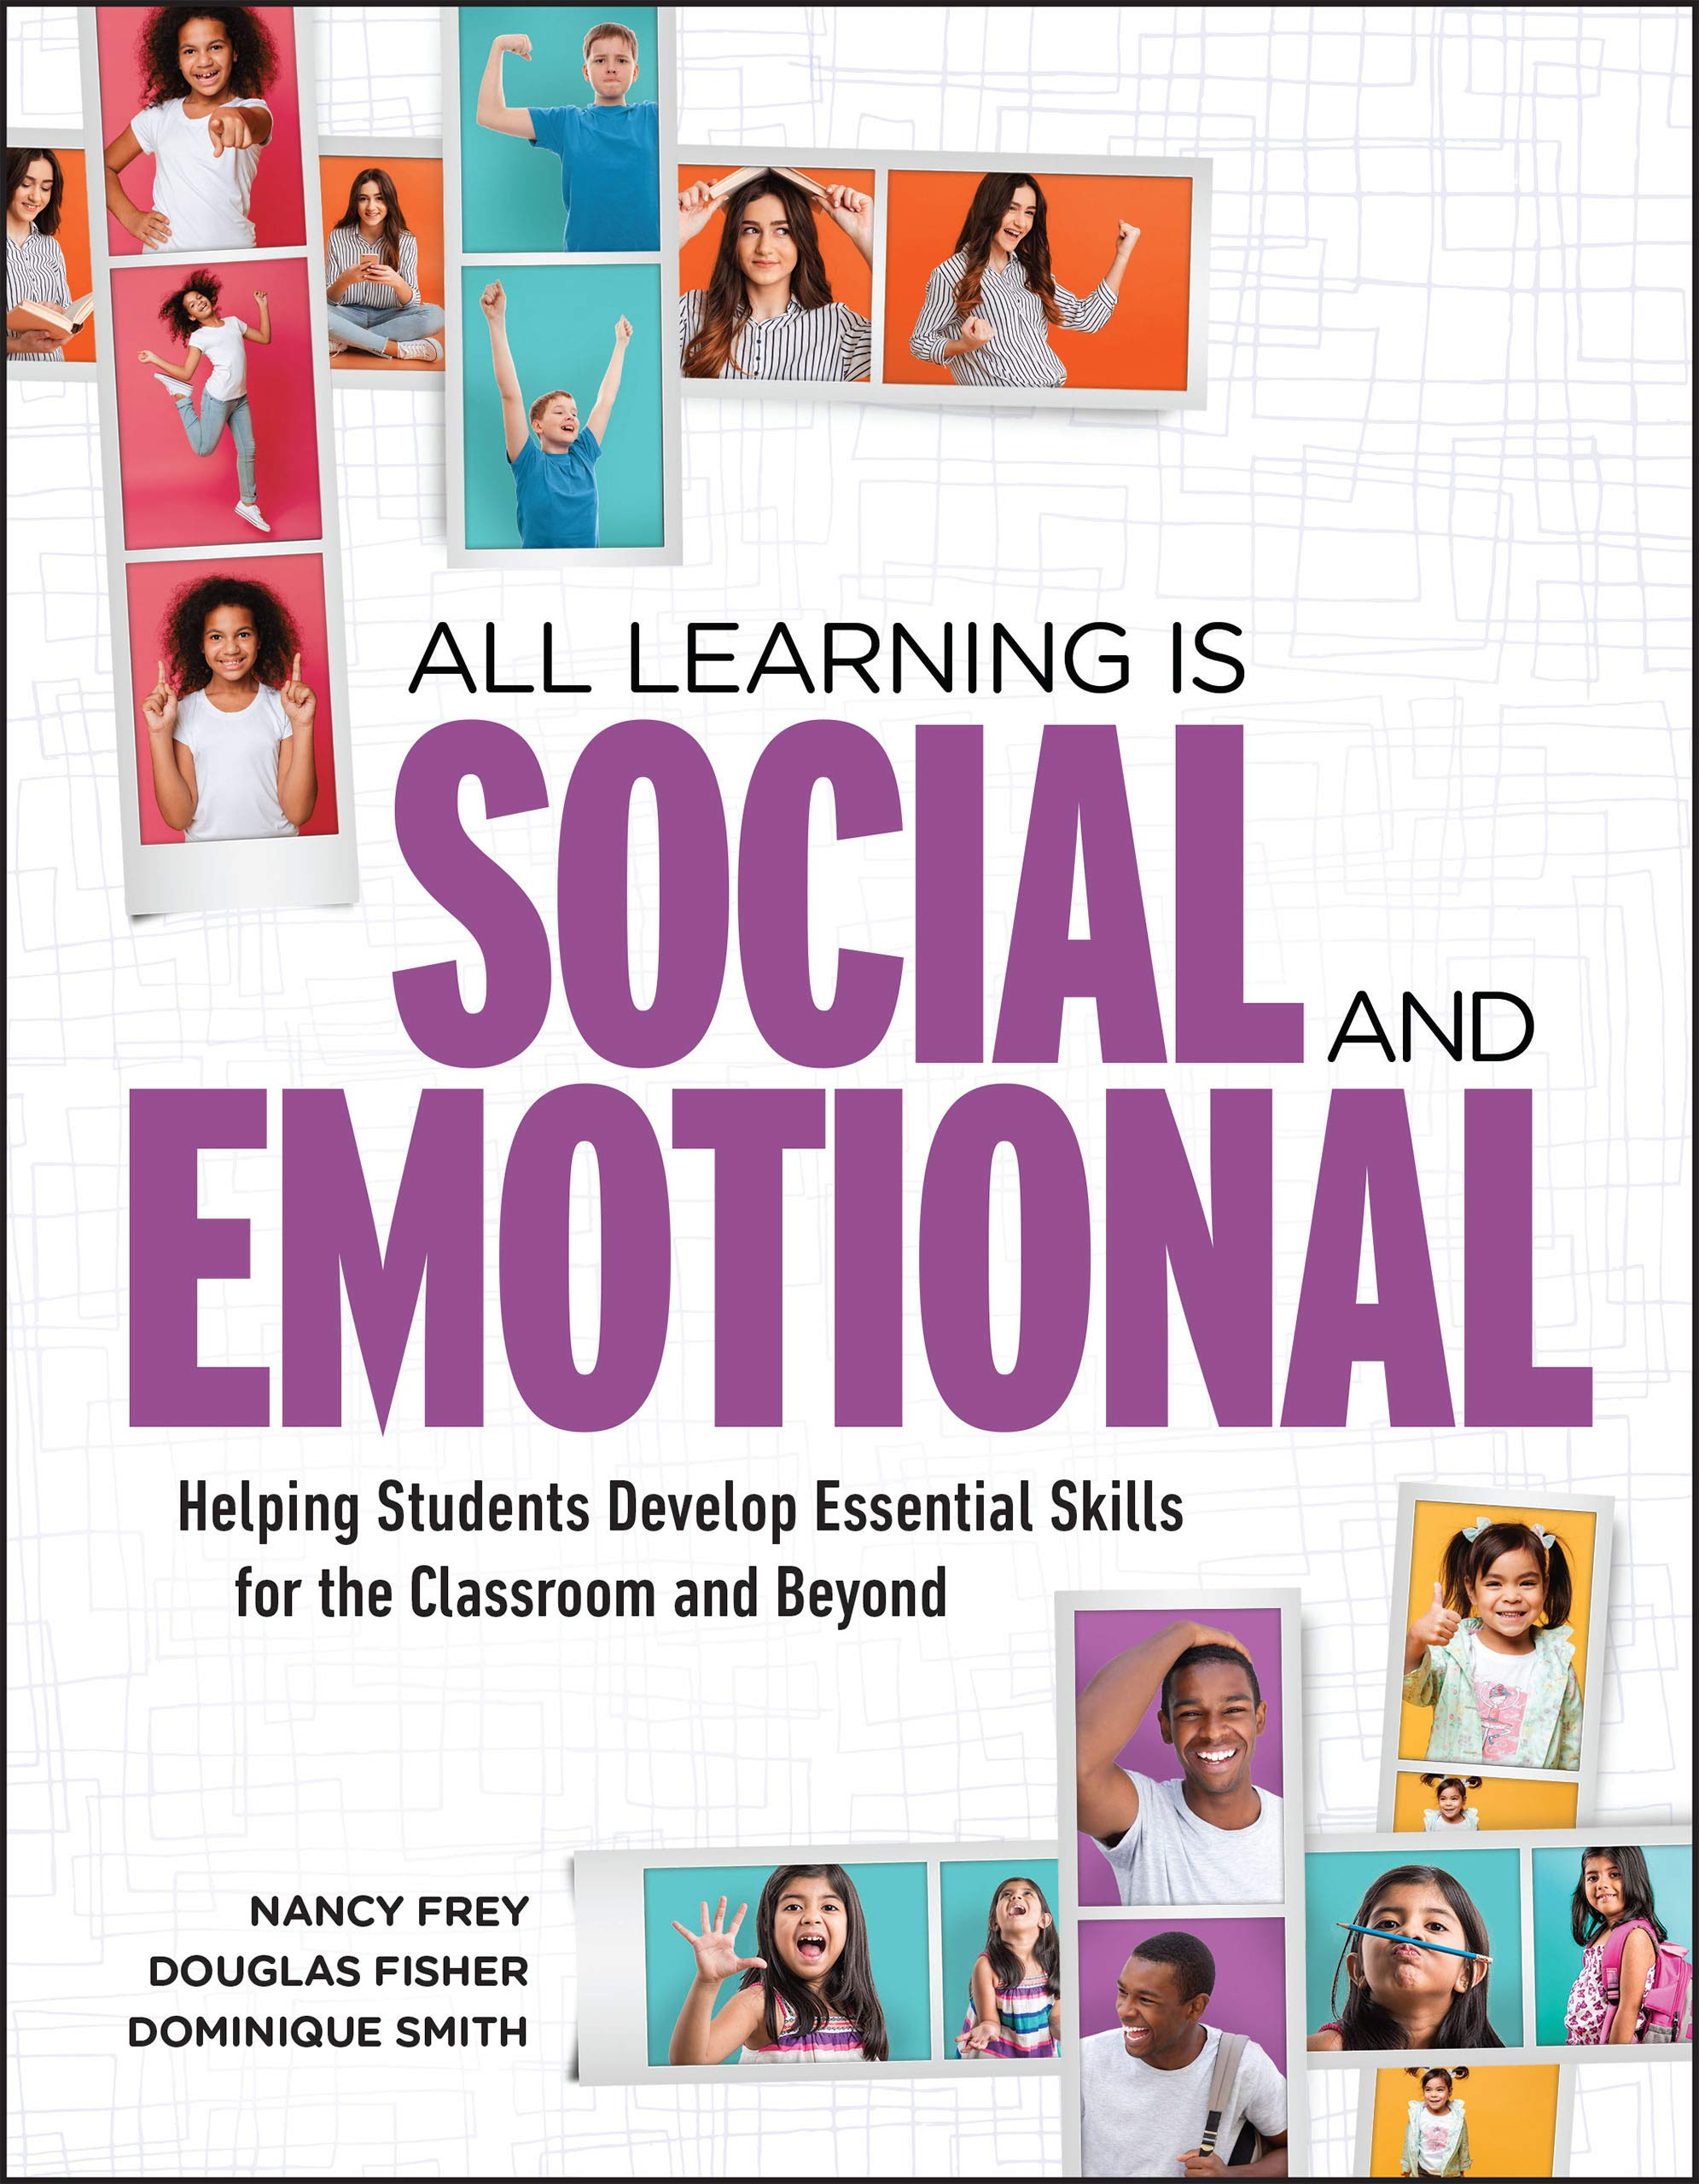 When Social And Emotional Learning Is >> All Learning Is Social And Emotional Helping Students Develop